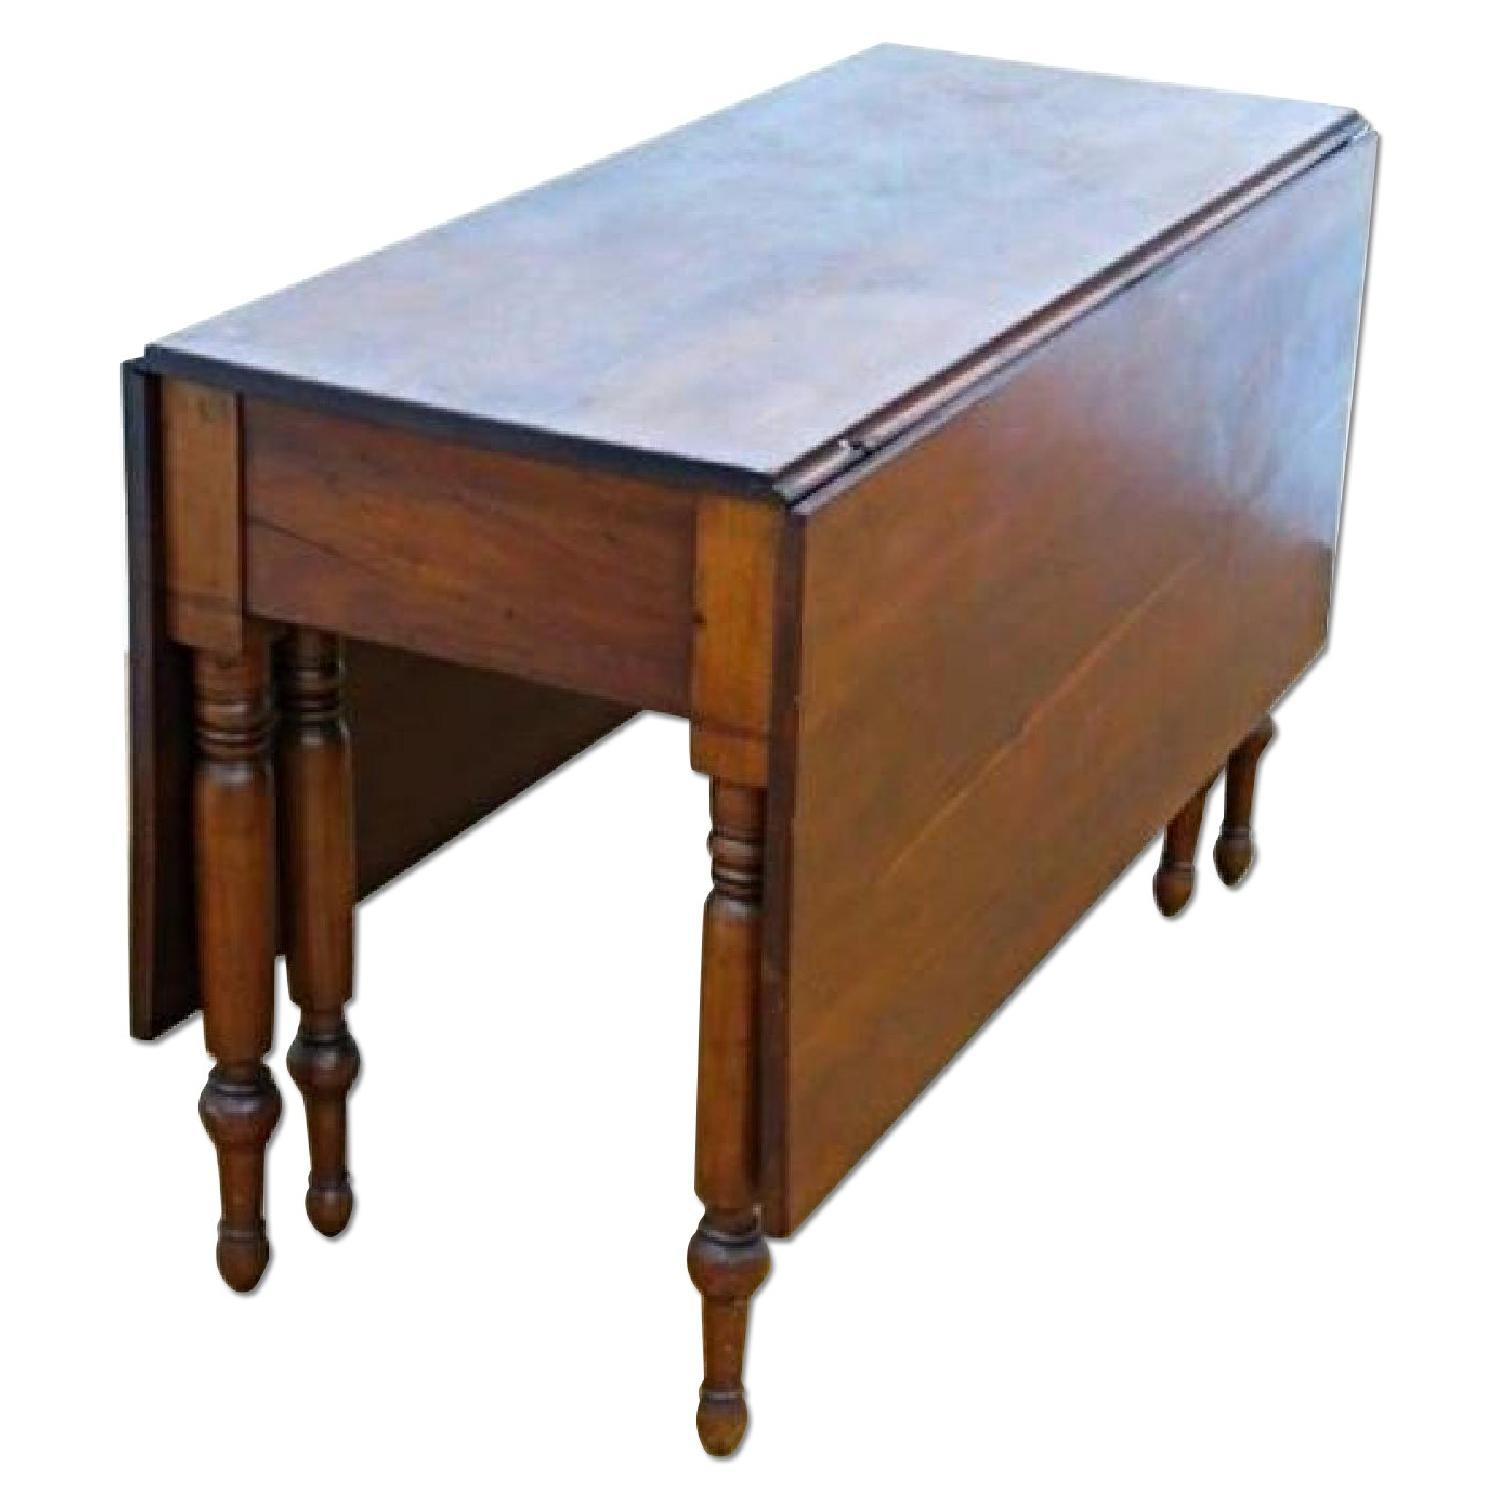 Delicieux On Offer On This Occasion Is A Stunning Antique Cherry Drop Leaf Table With  Spindle